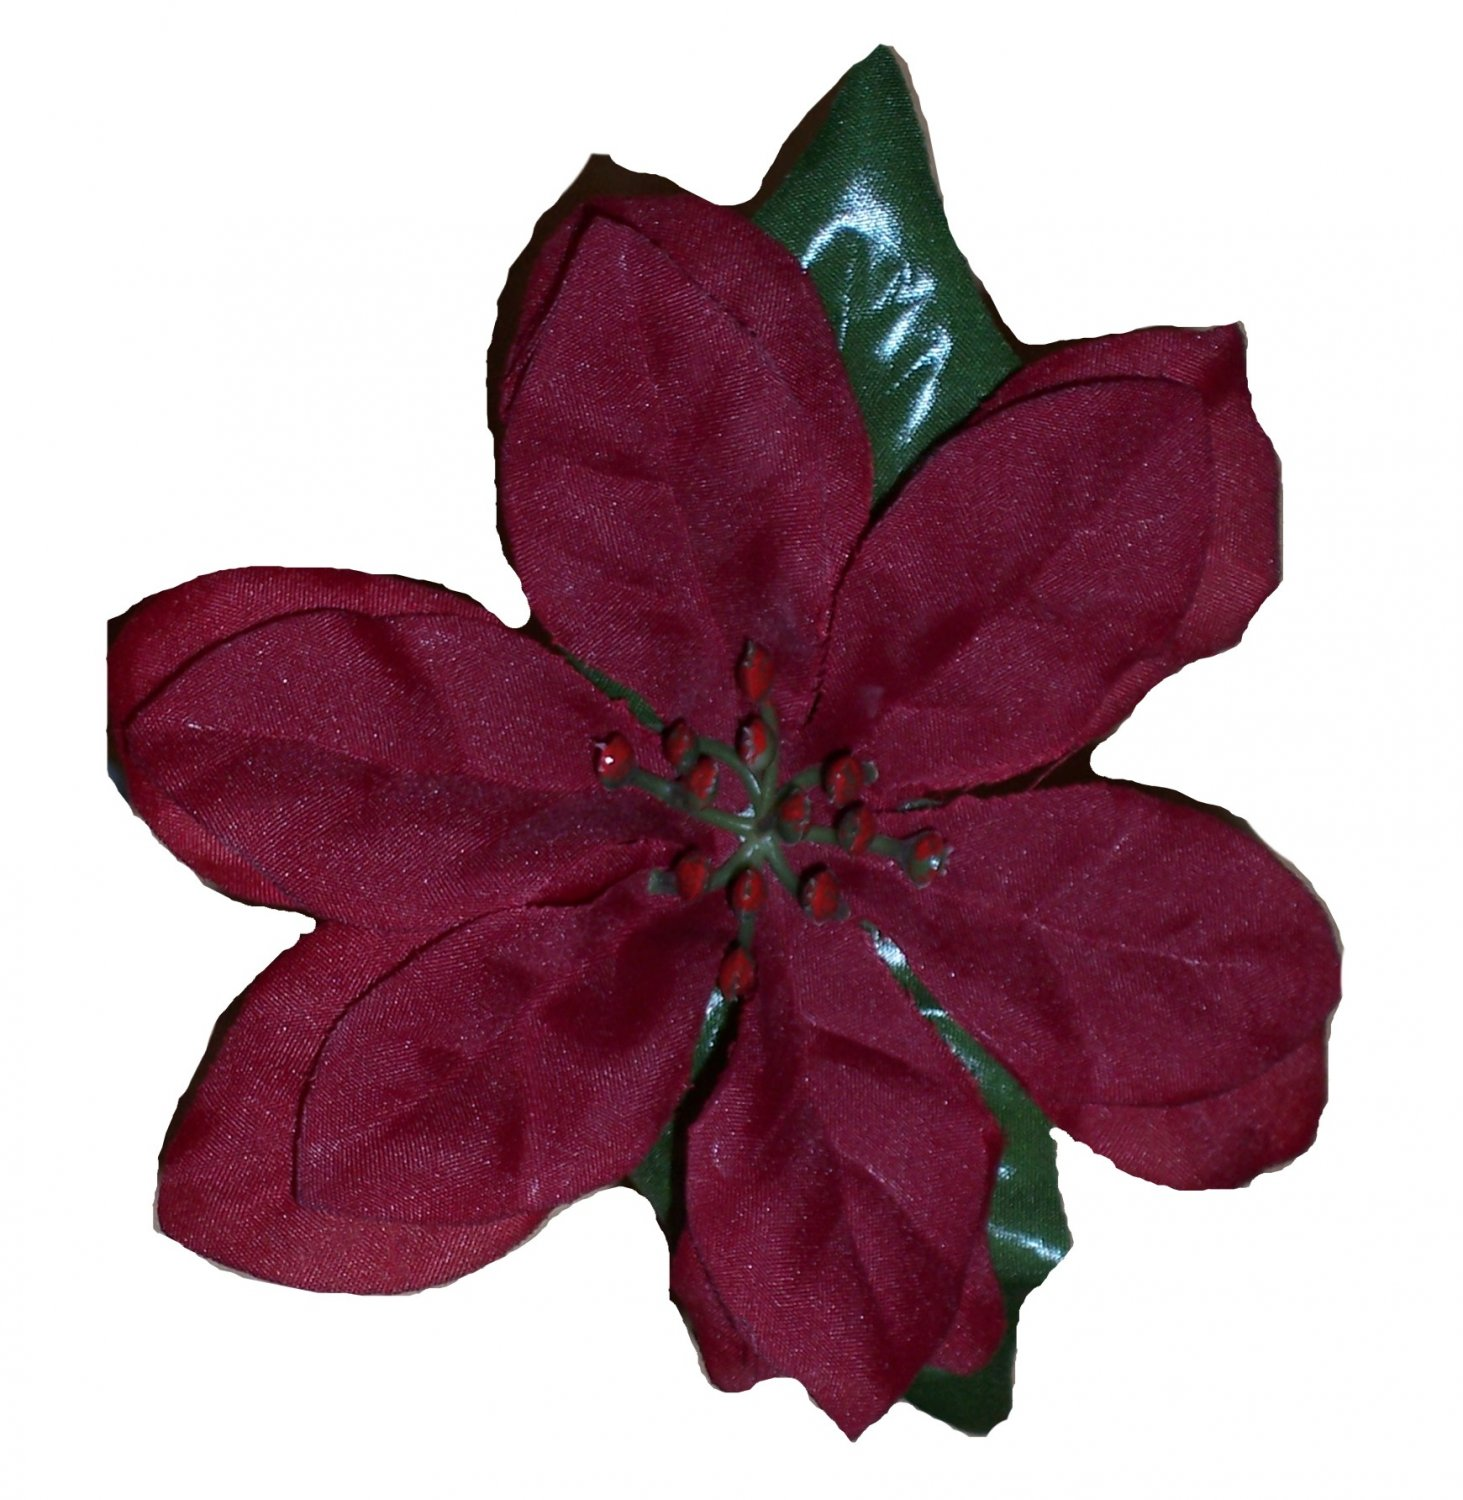 Poinsettia Flower Pens- set of 10